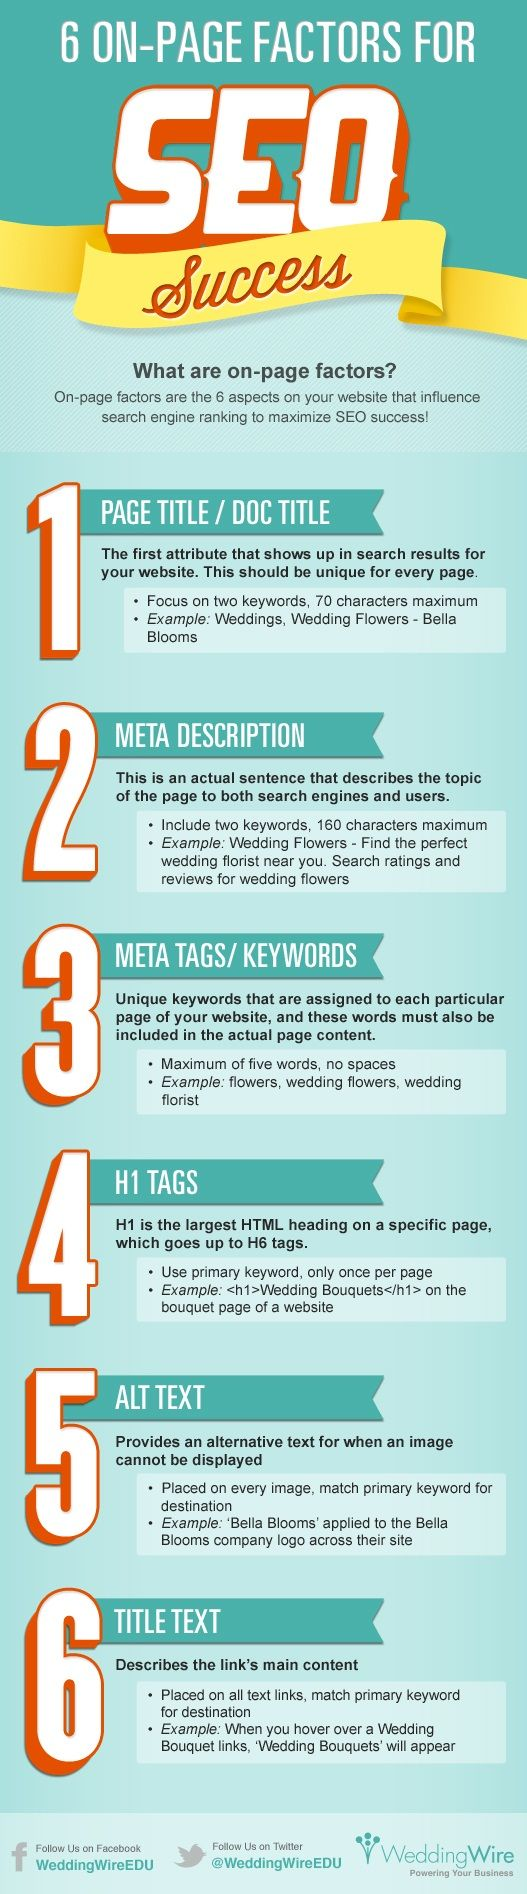 6 Steps for SEO Success #infographic